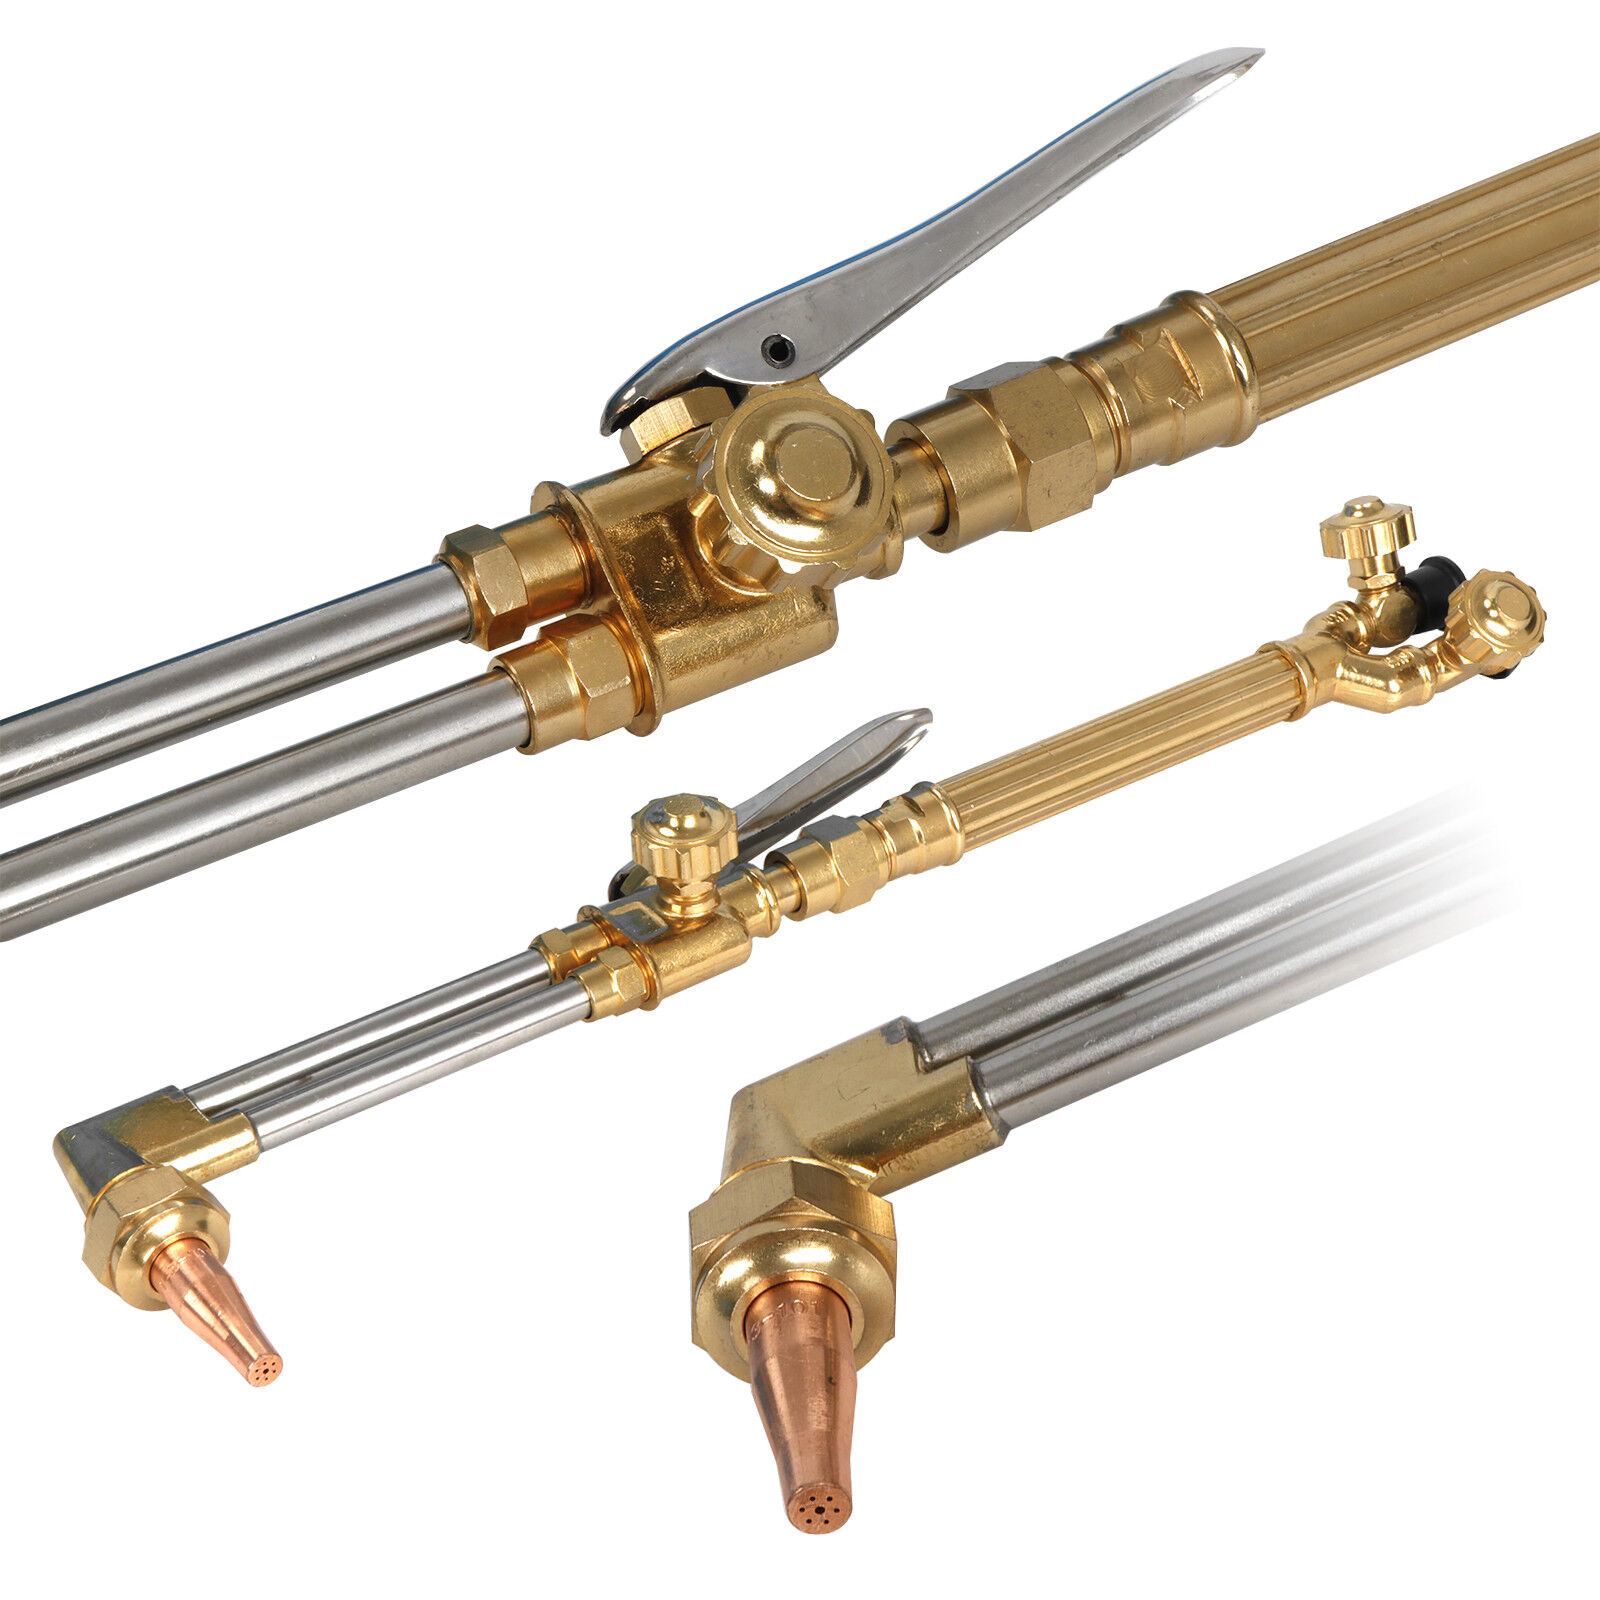 90 Degree Head Oxweld Compatible Tested in The USA Acetylene 27 Length FlameTech 6427-A90 Heavy Duty Hand Cutting Torch